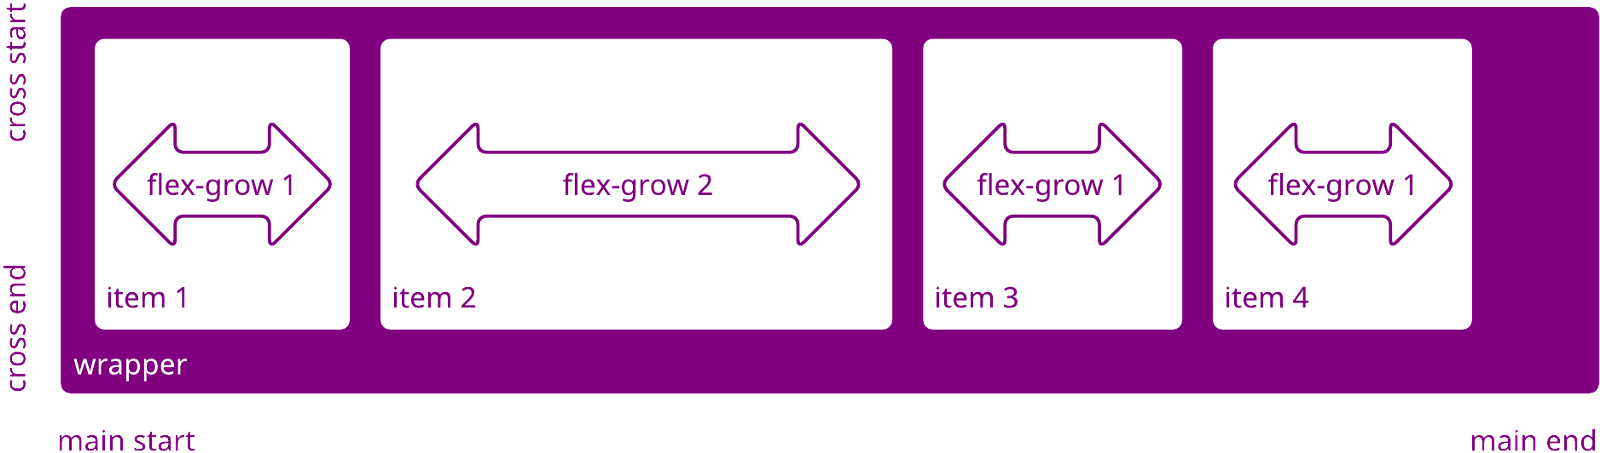 basically in order to use flex grow you need to first set a flex basis if you have 4 items like the ones shown here you would define each with a flex